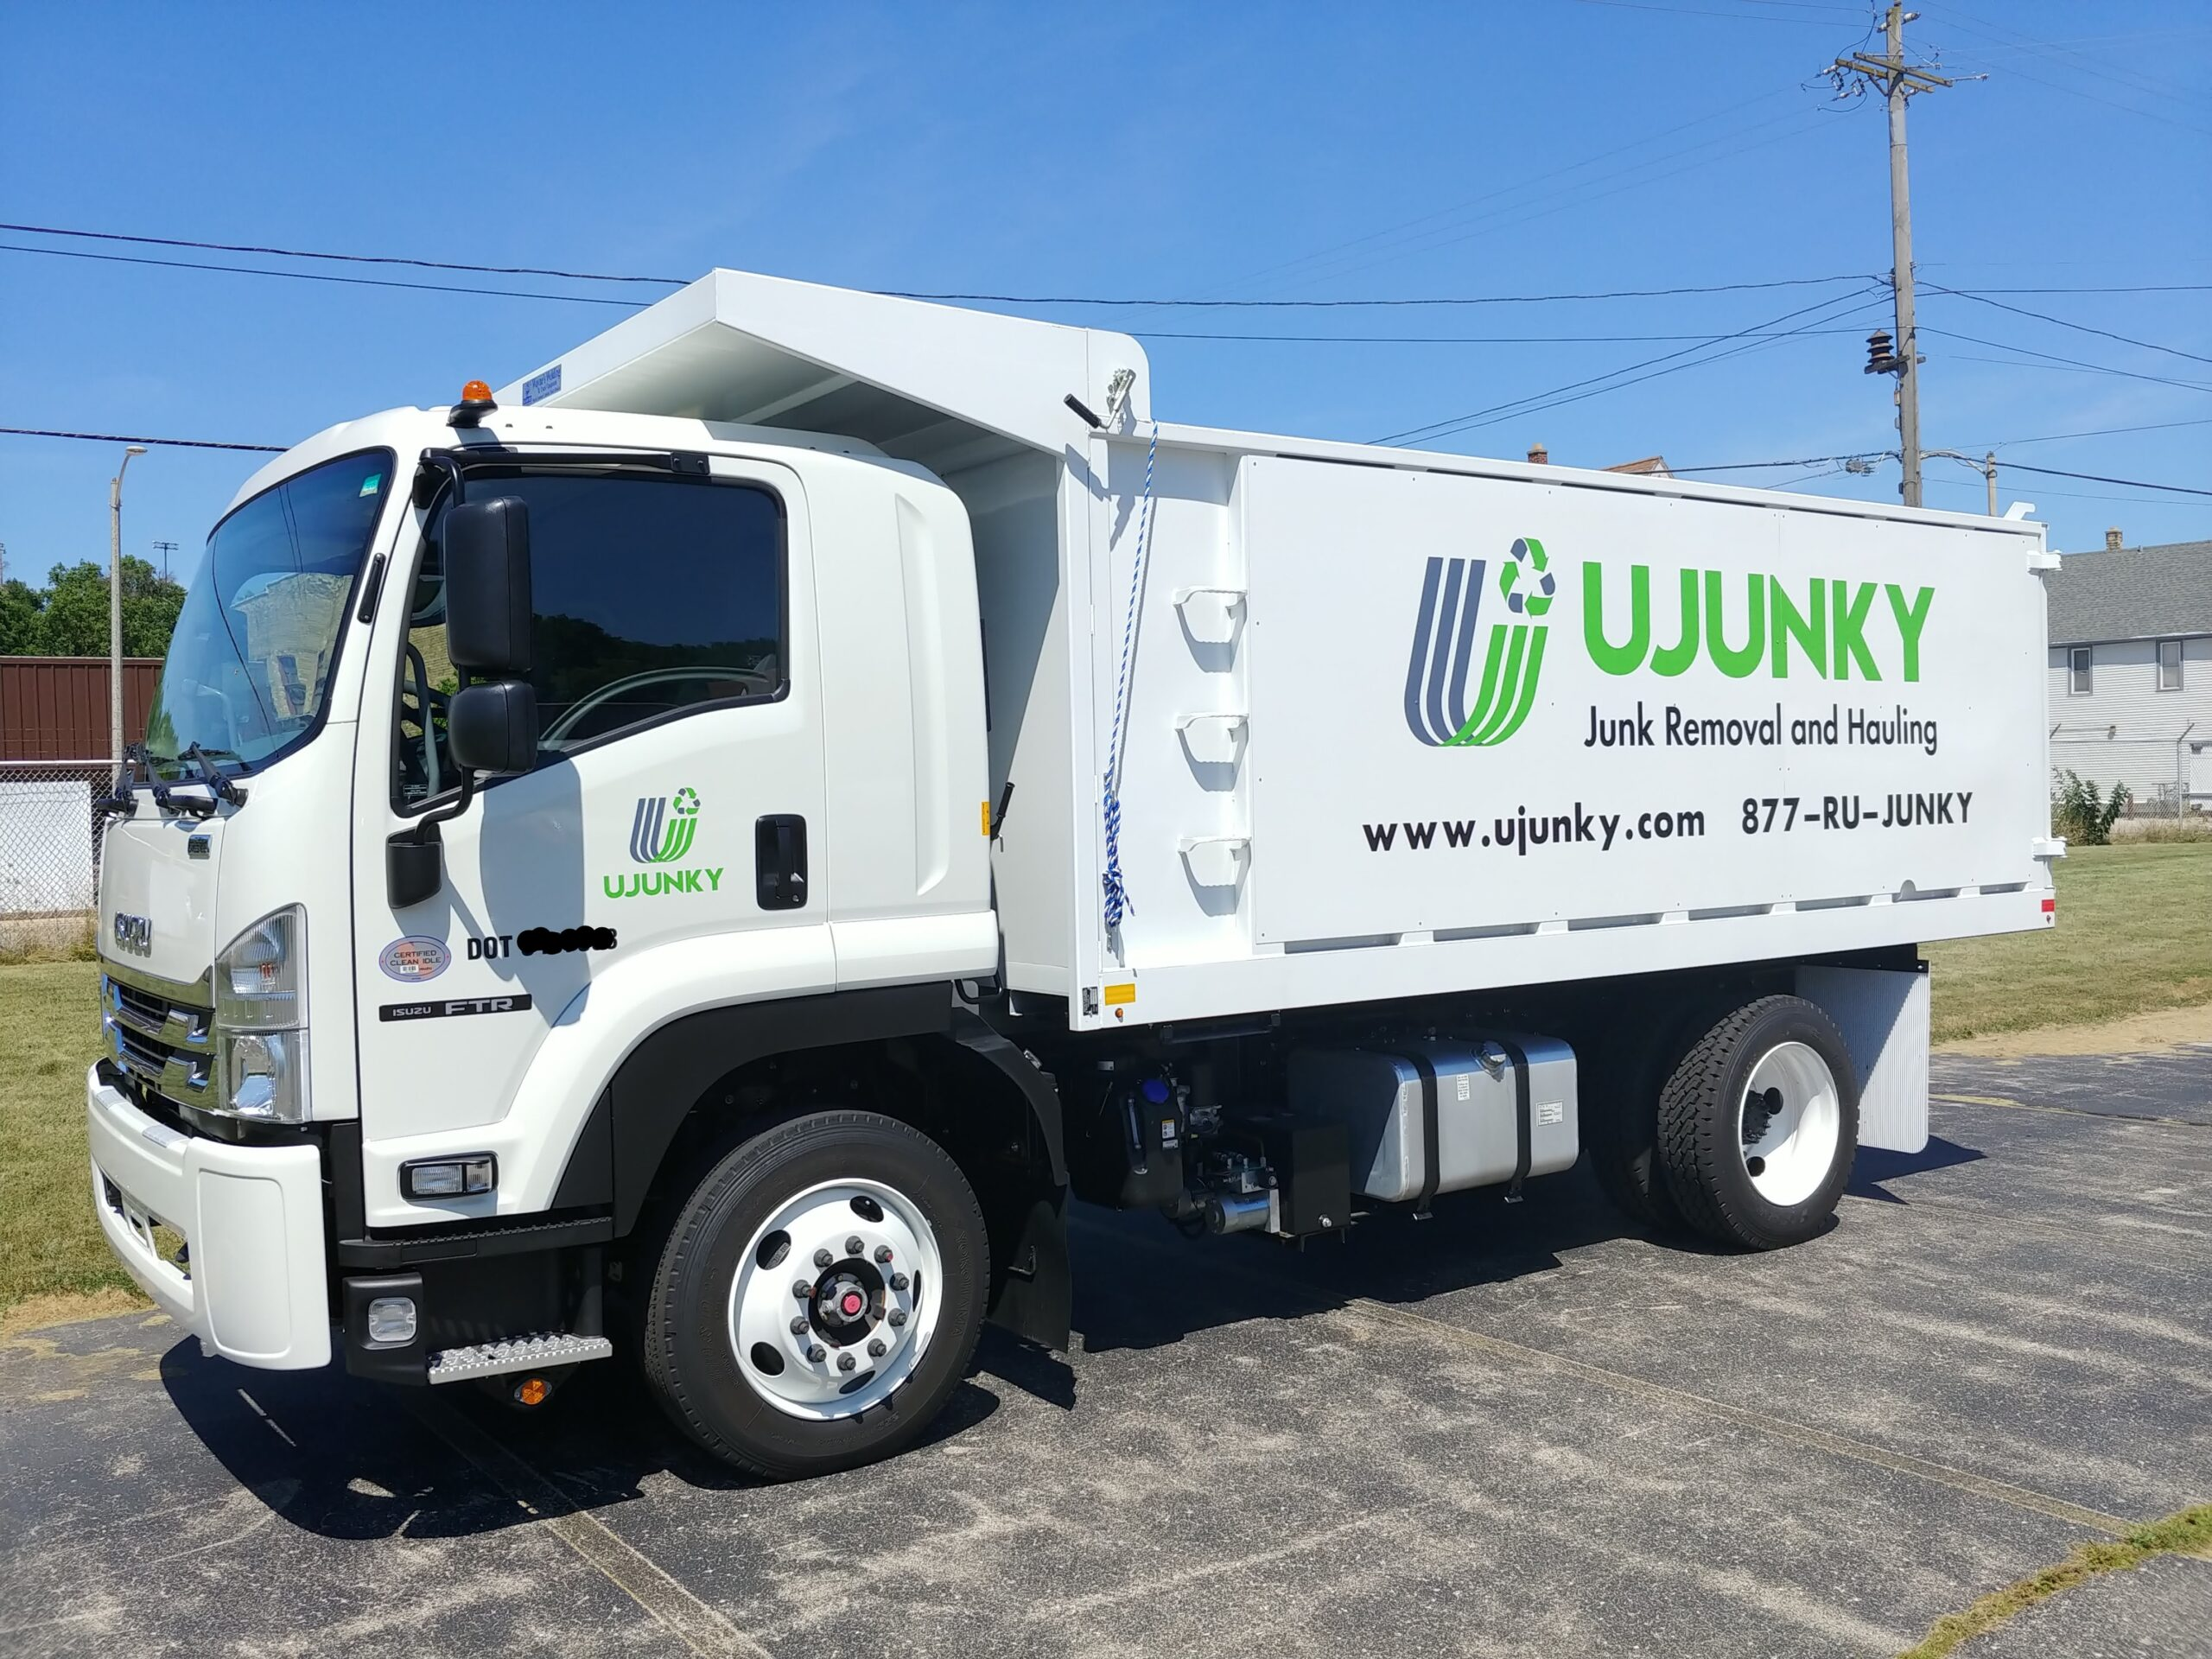 UJUNKY white junk hauling tuck with green and grey logo